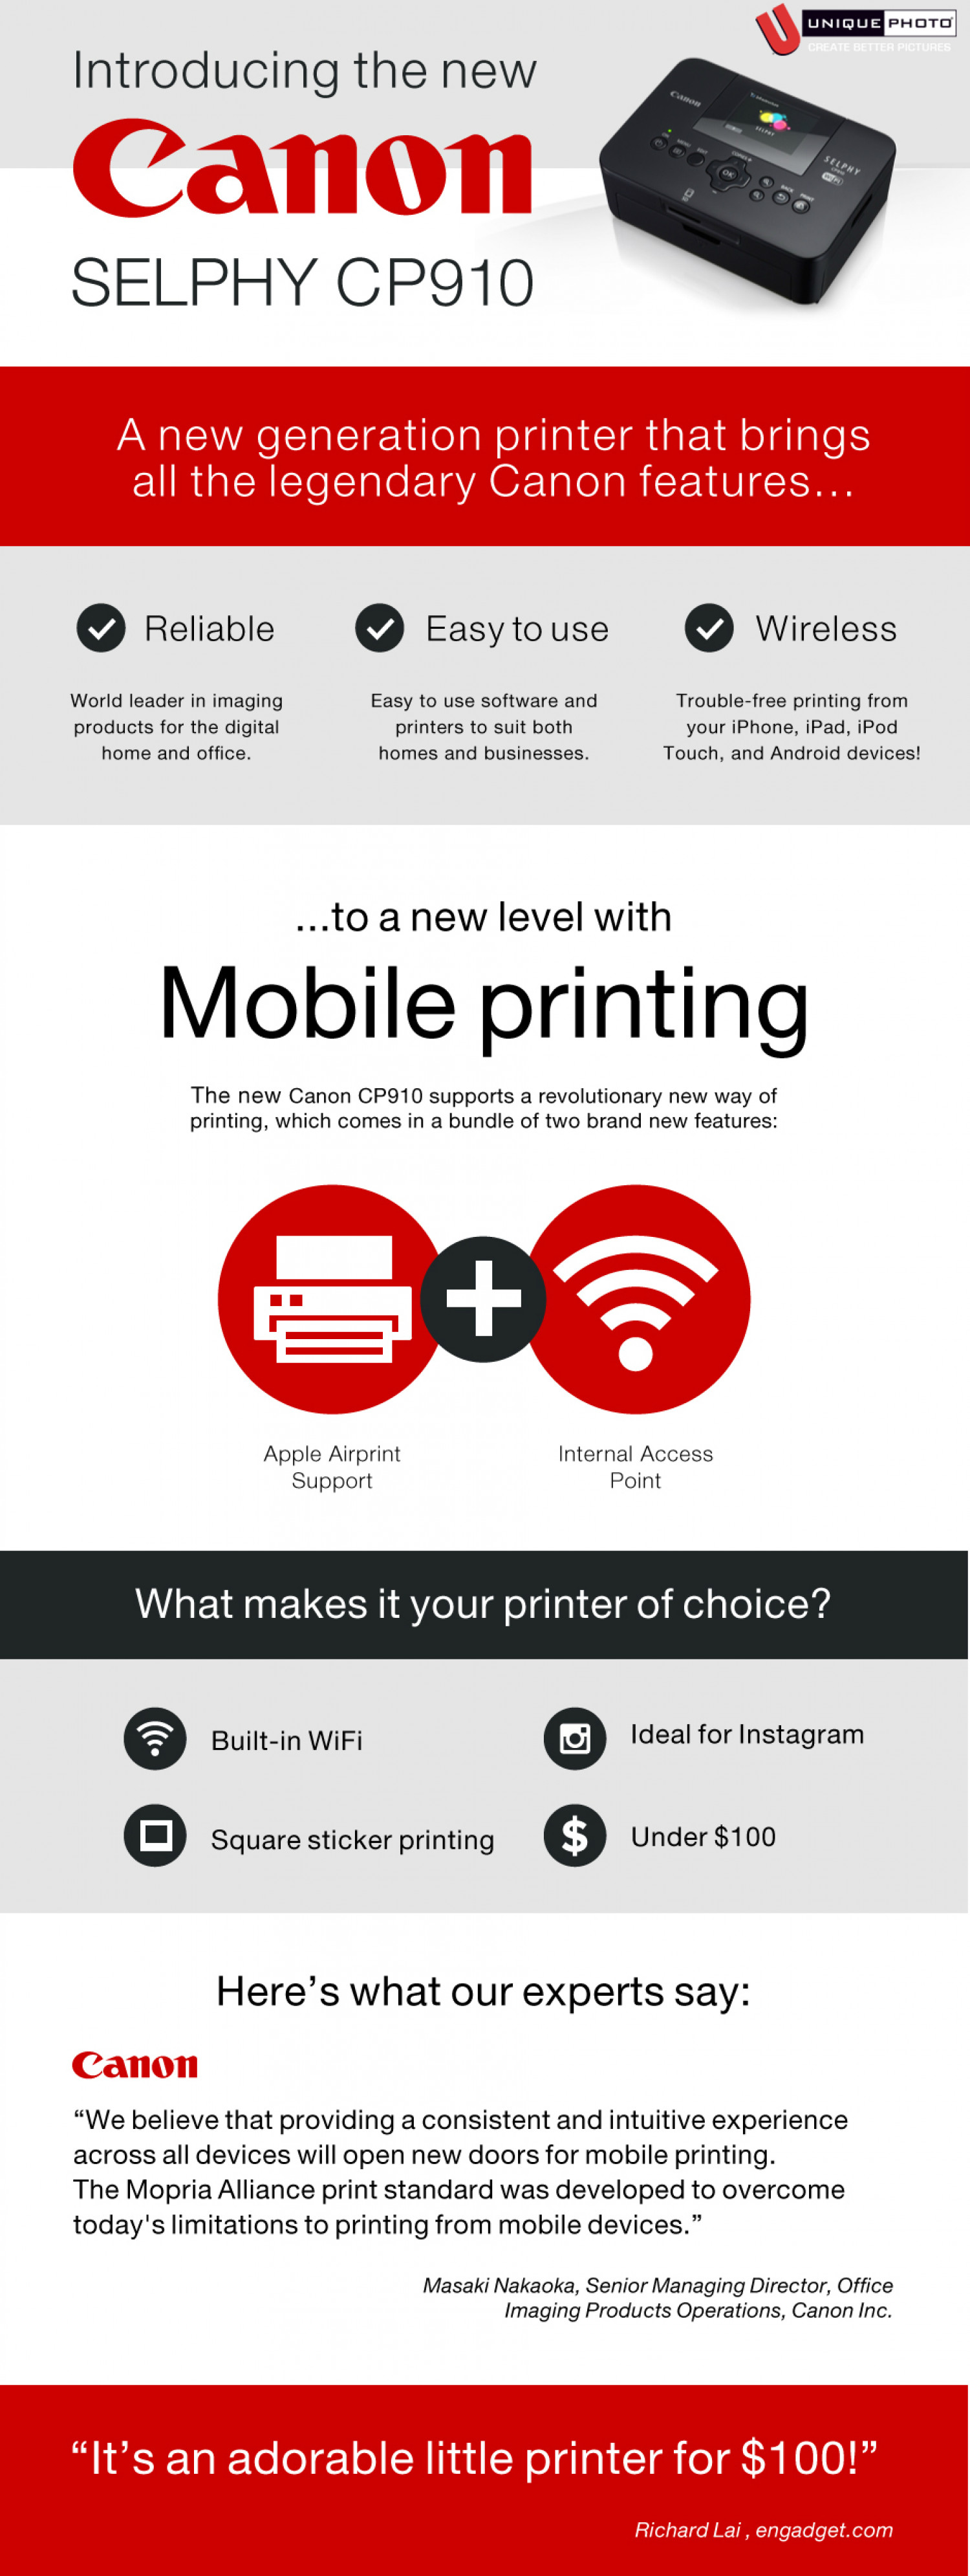 Canon Selphy CP910 Infographic